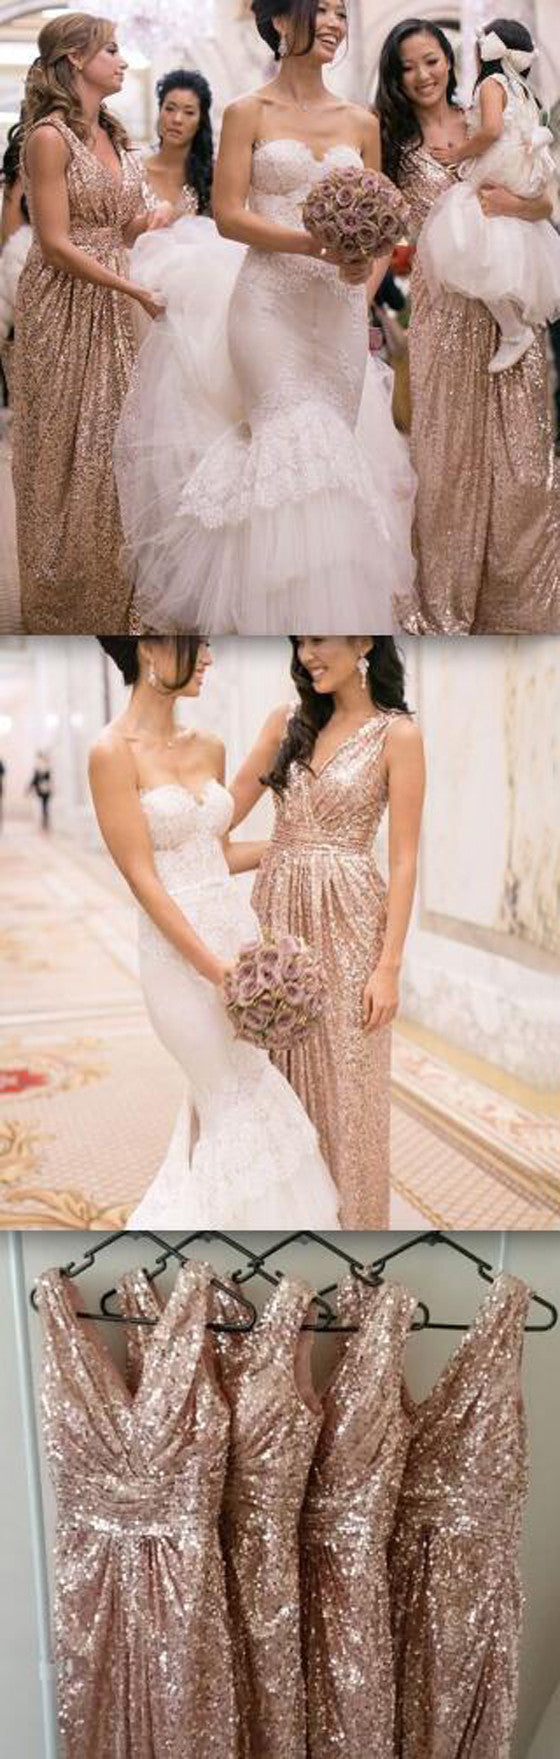 Sequin Long V-Neck Popular Shinning Bridesmaid Dresses, BG51320